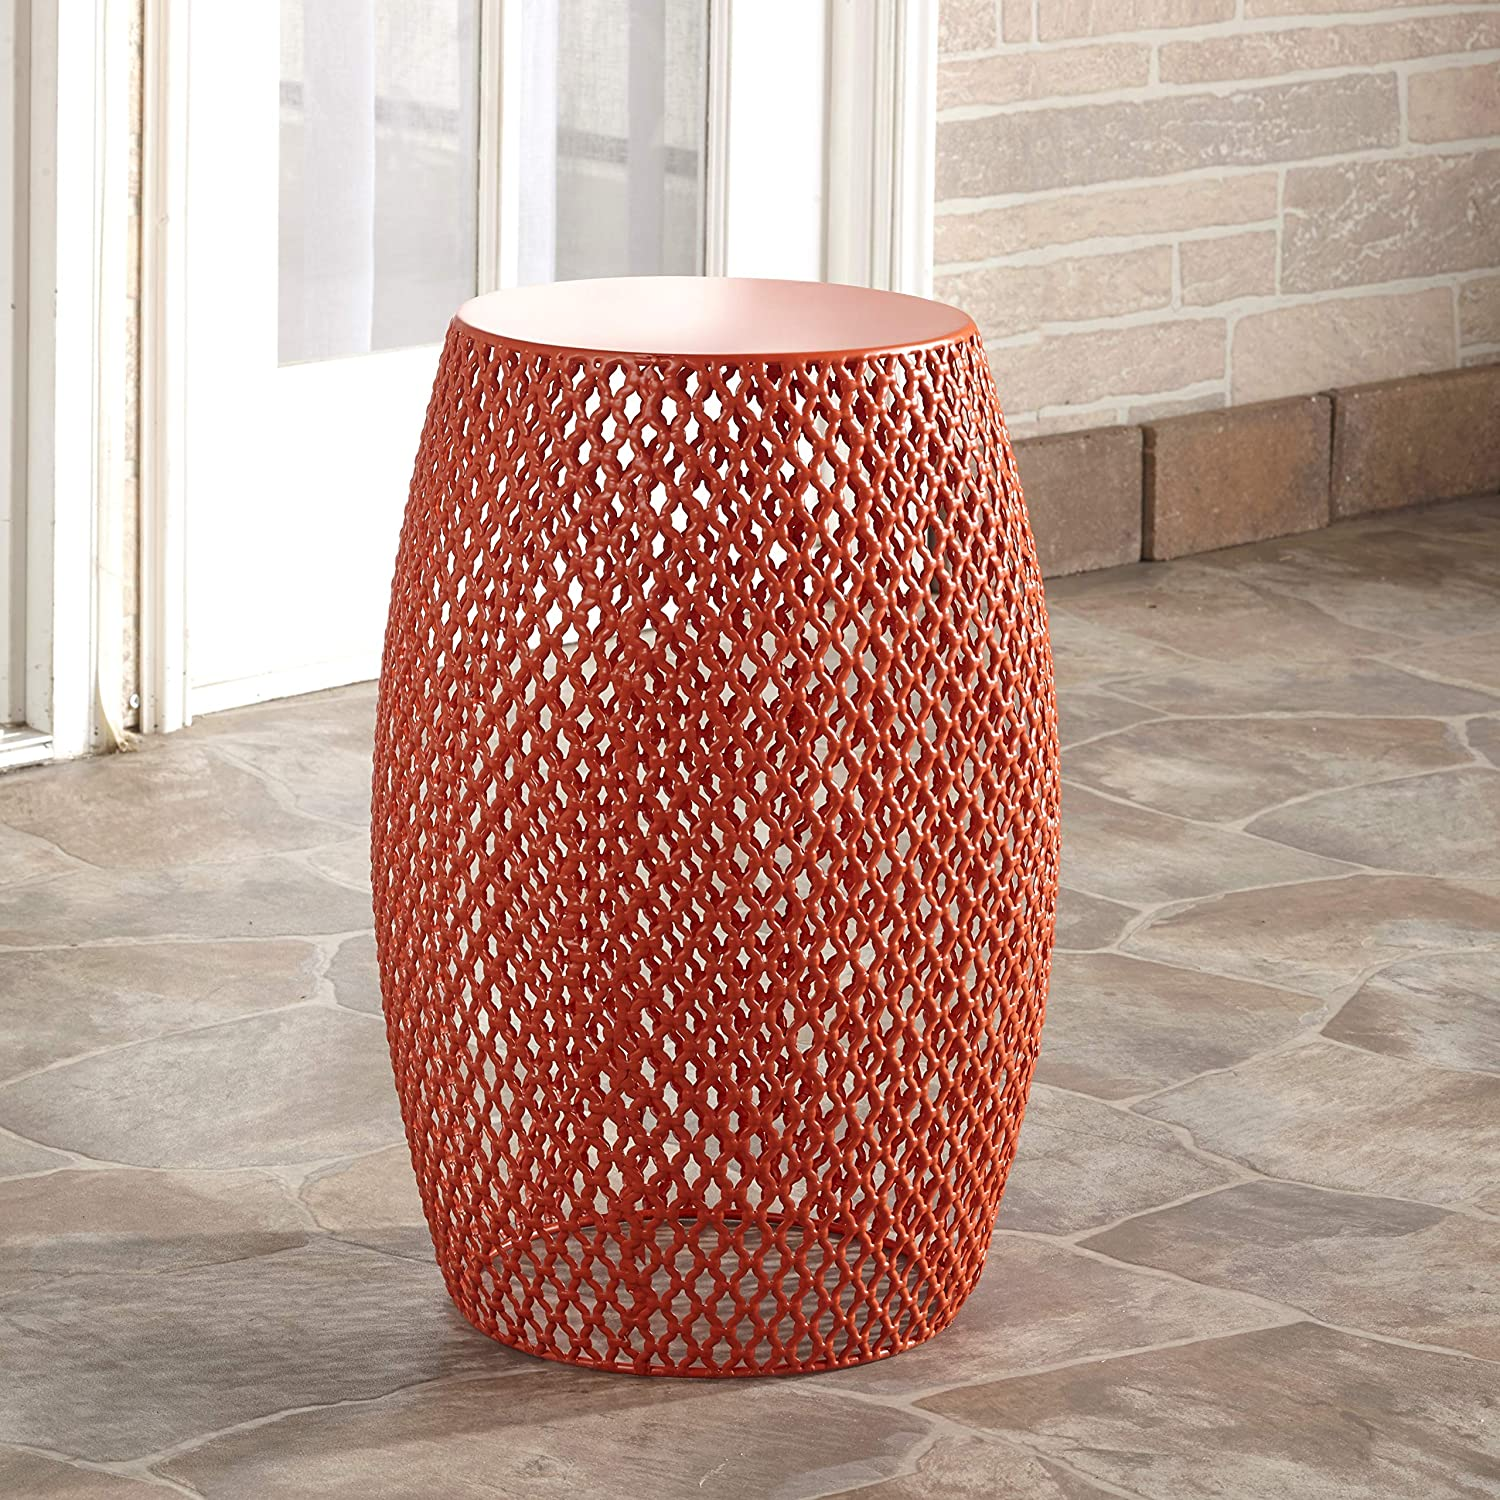 The Lakeside Collection Metal Outdoor Garden Stool, Accent Table, Side Table, or Plant Stand - Sunset Orange